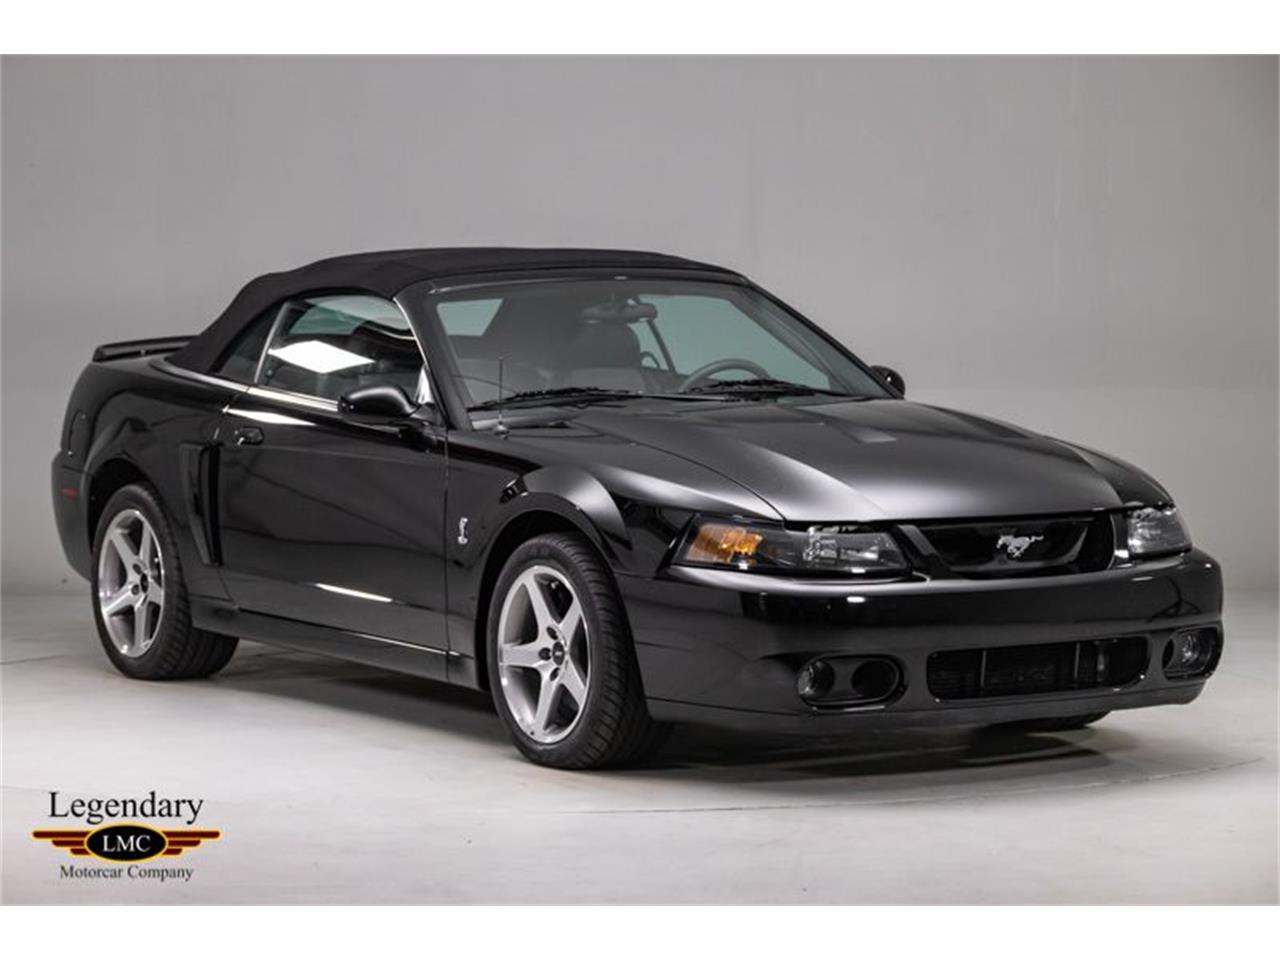 Large picture of 03 mustang olpe